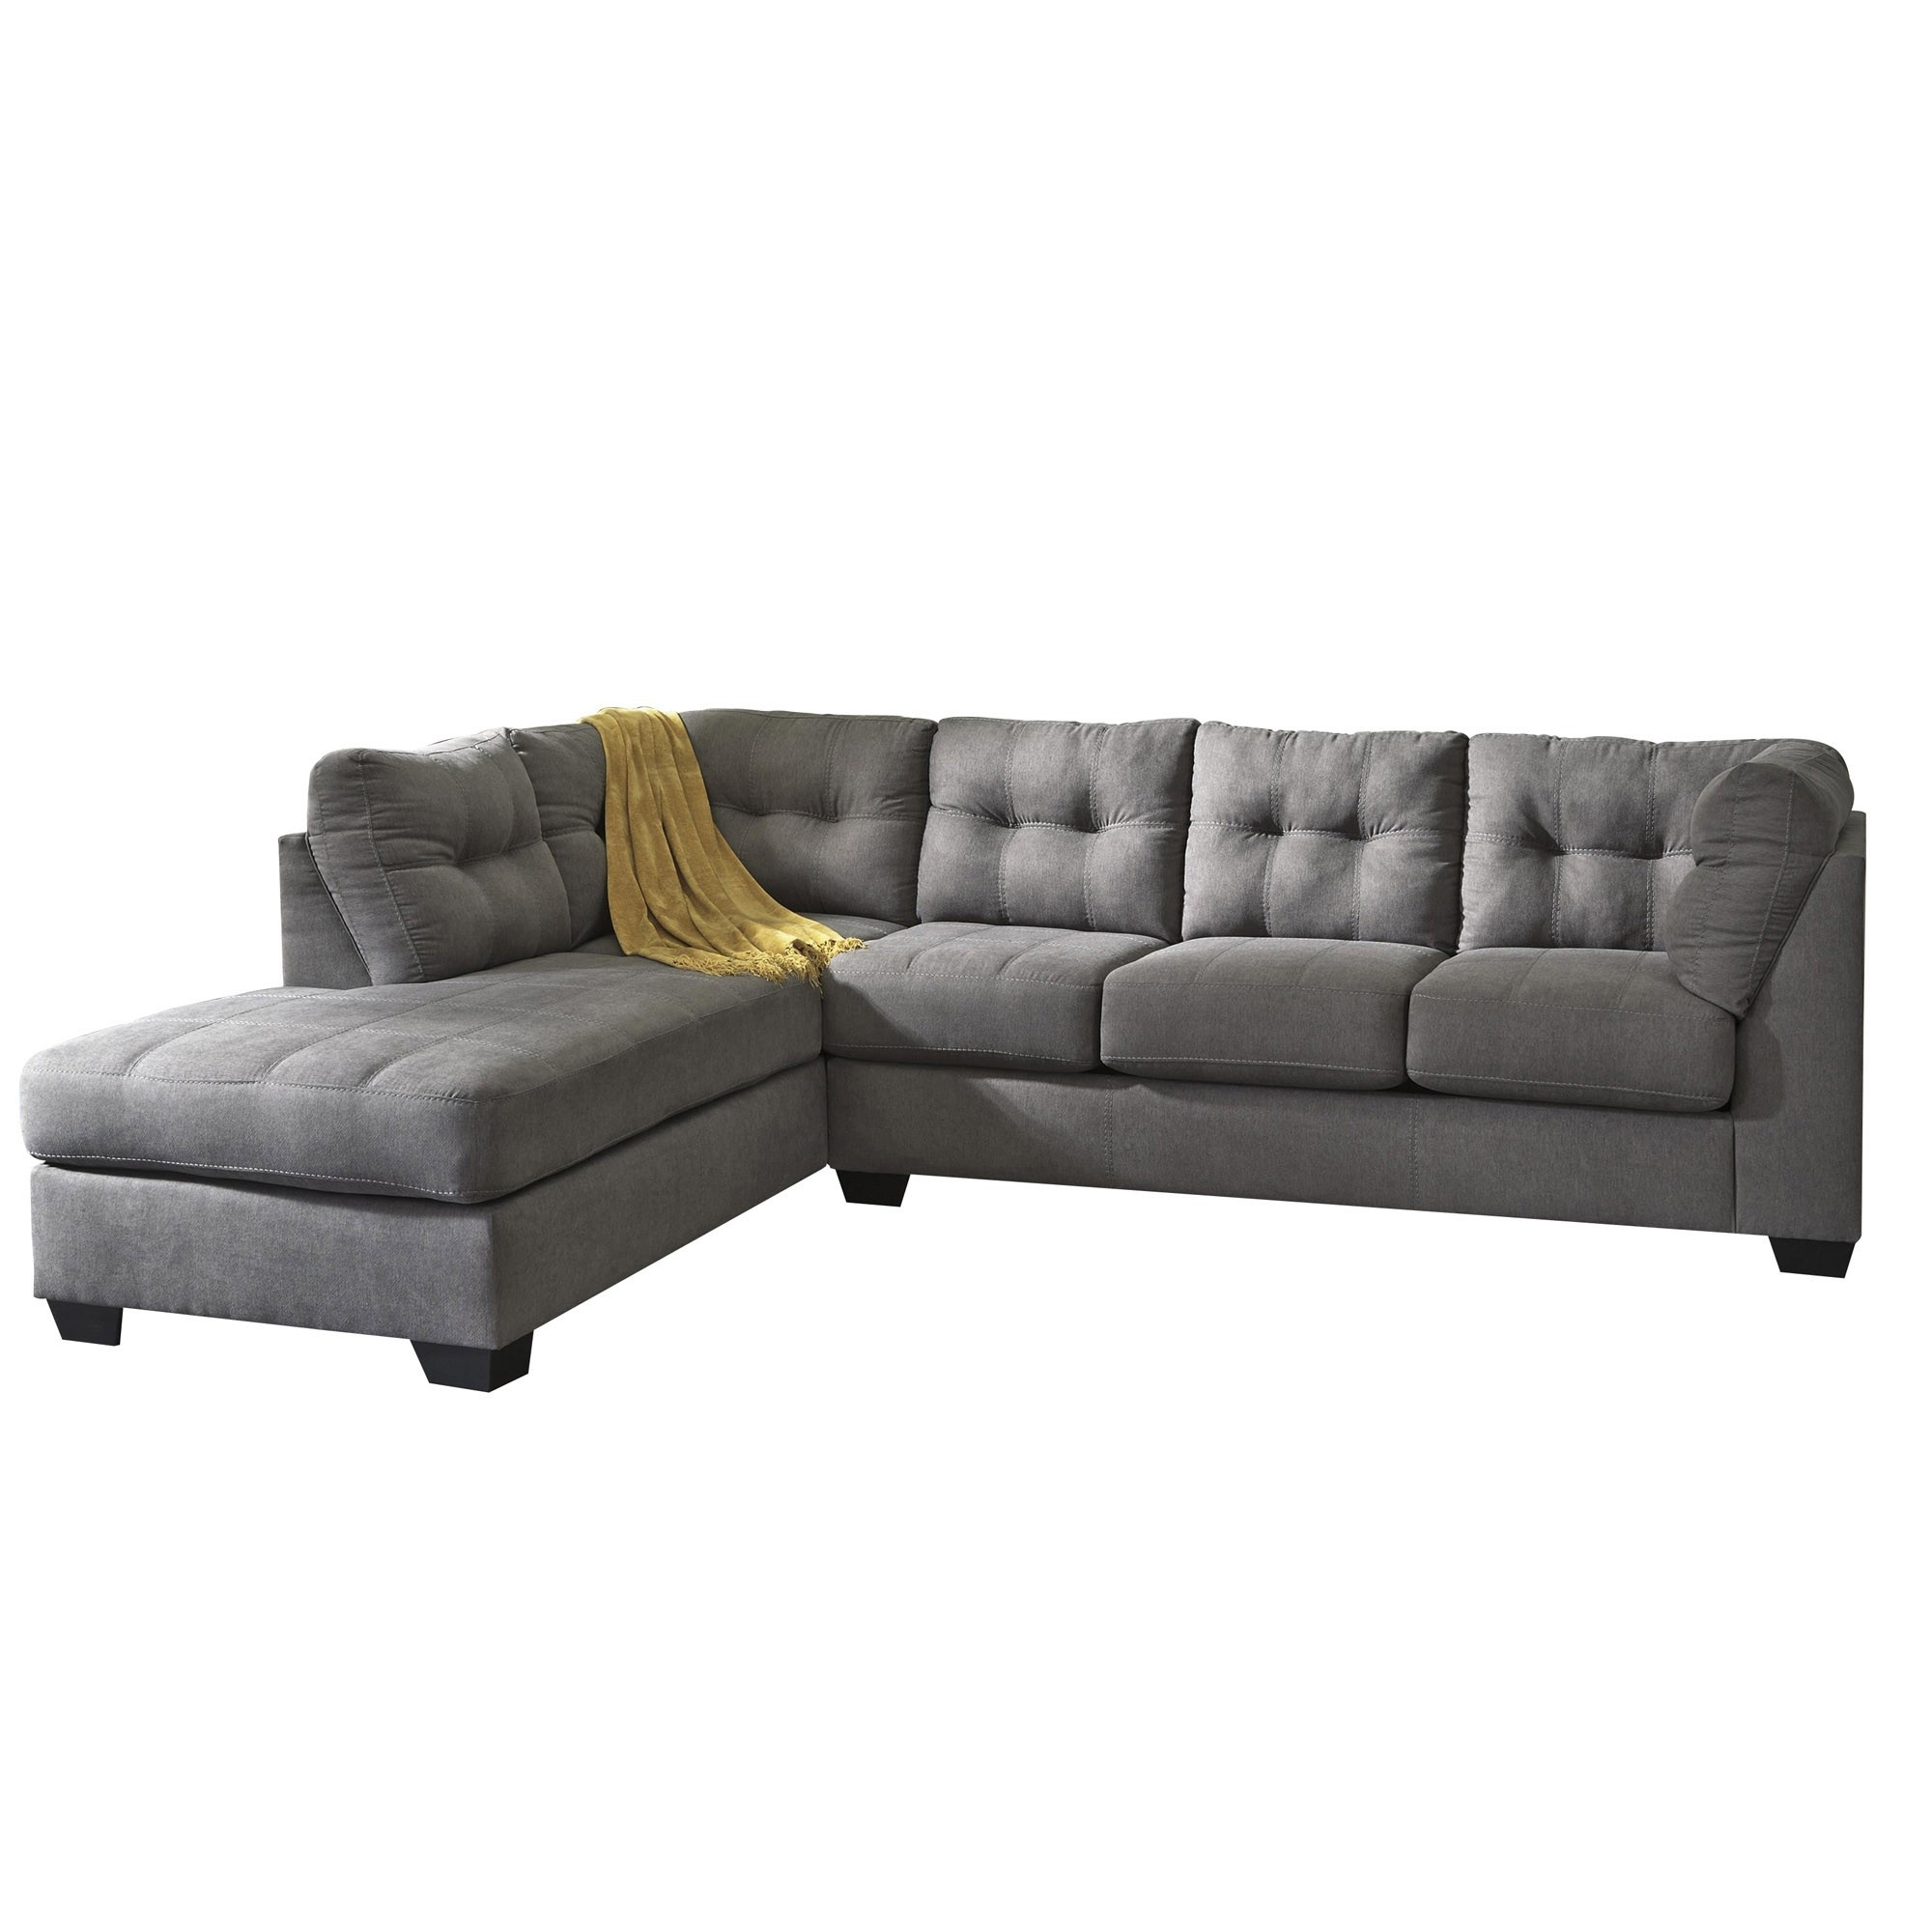 Maier 2 Piece Sectional | Tepperman's Intended For Teppermans Sectional Sofas (Image 5 of 10)